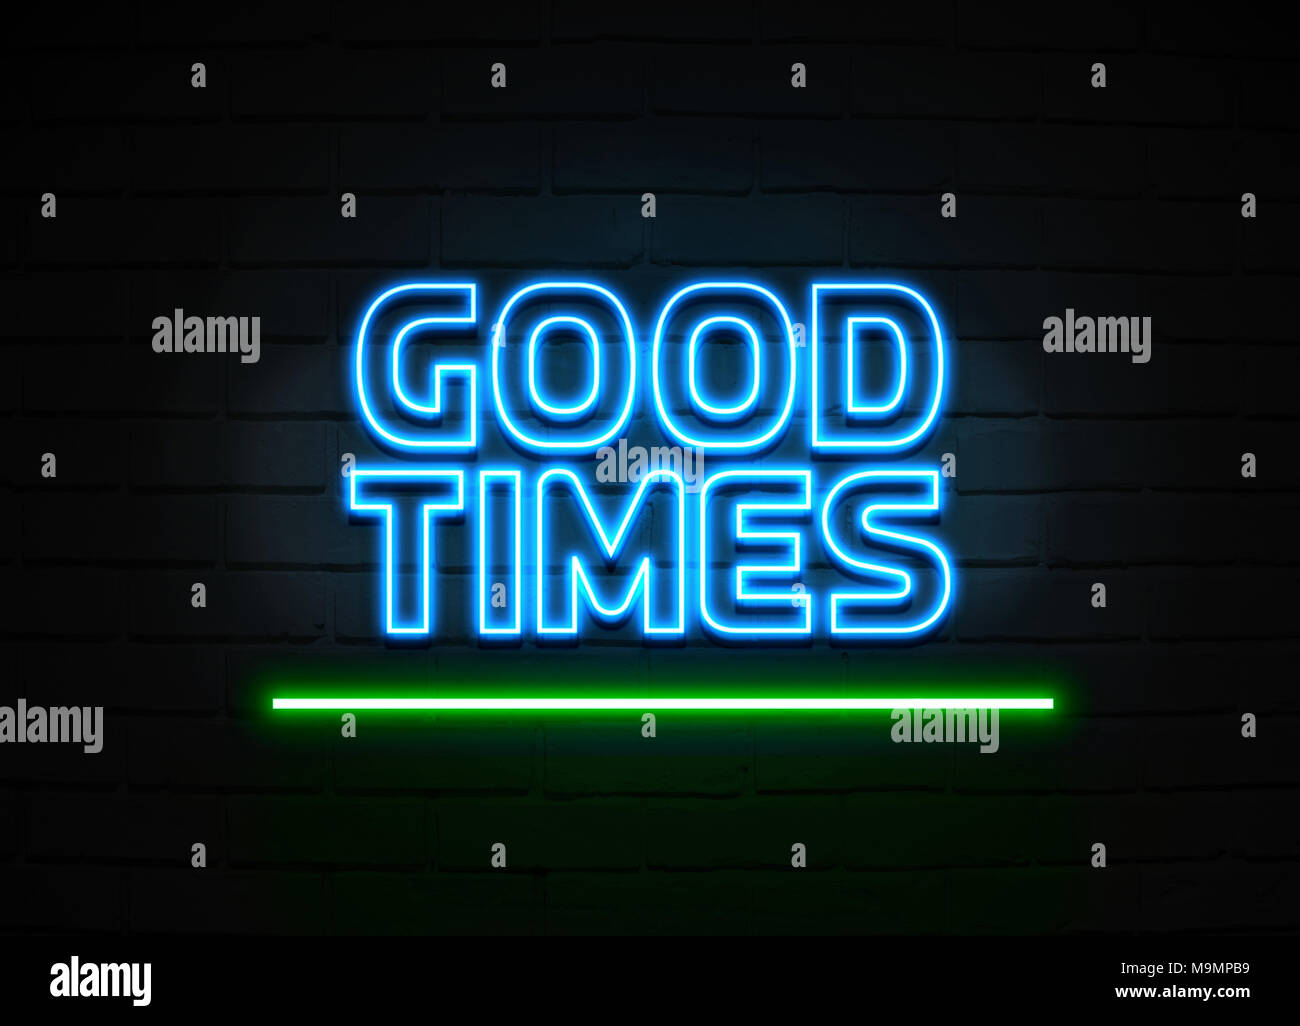 Good Times neon sign - Glowing Neon Sign on brickwall wall - 3D rendered royalty free stock illustration. - Stock Image